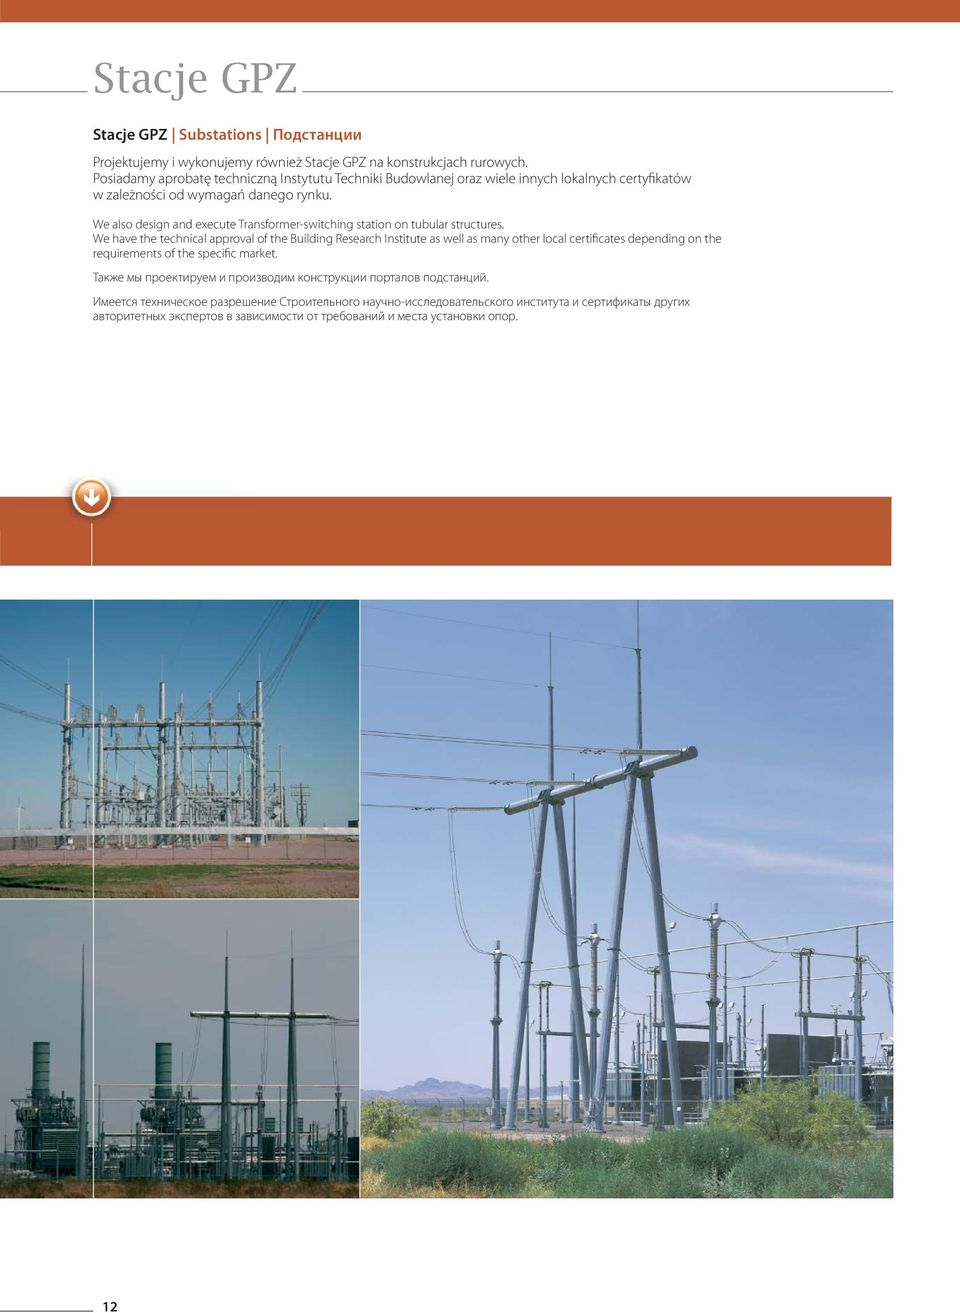 We also design and execute Transformer-switching station on tubular structures.